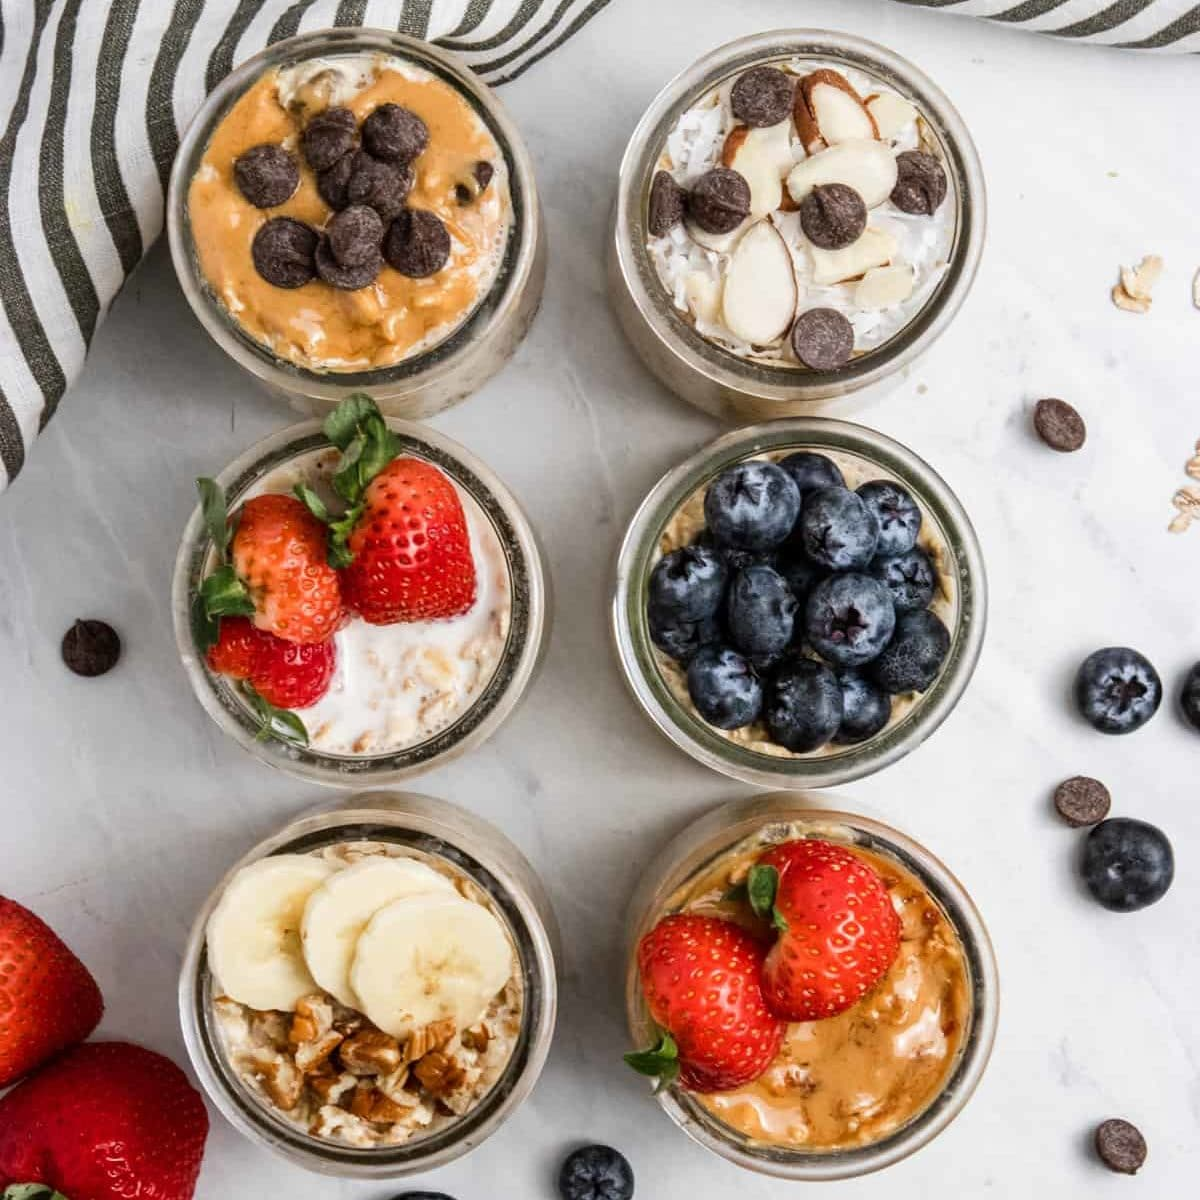 23 Easy & Quick Vegan Breakfast Recipes - 6 EASY OVERNIGHT OATS RECIPES